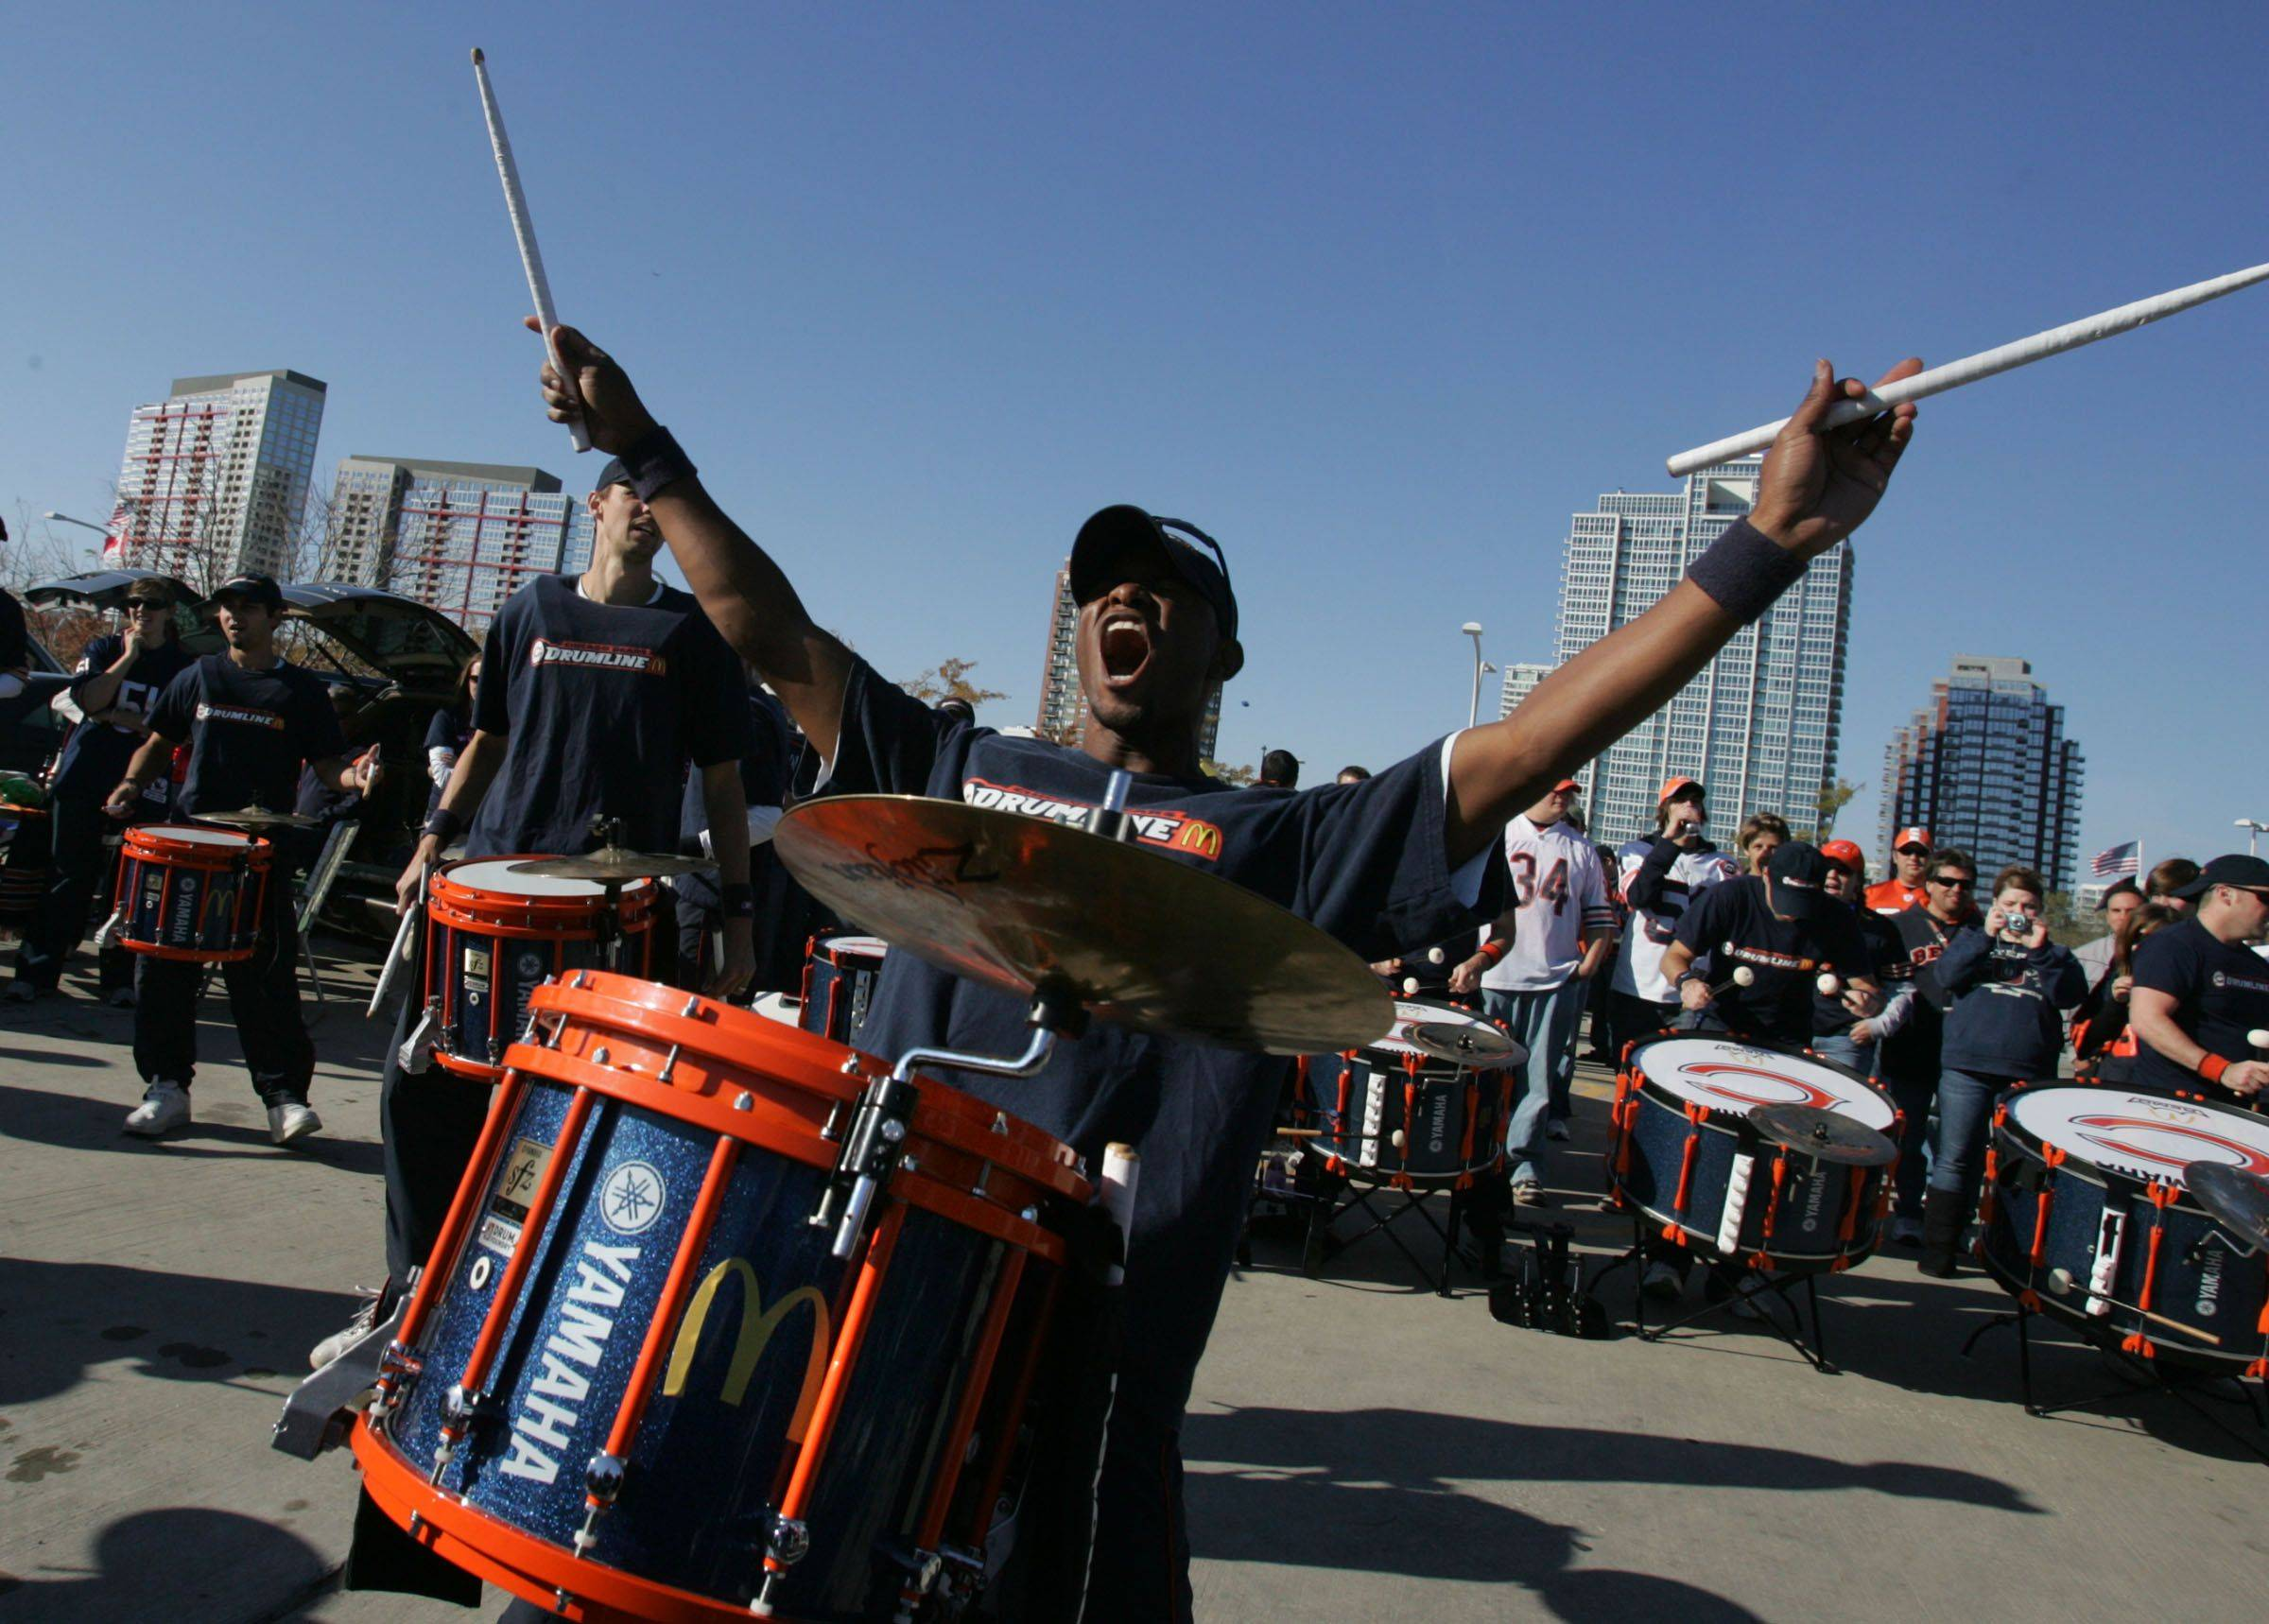 Chicago Bears' Drum line fired up the crowd on the upper deck parking lot at Soldier Field before the game against Seattle Seahawks on Sunday, October 17.